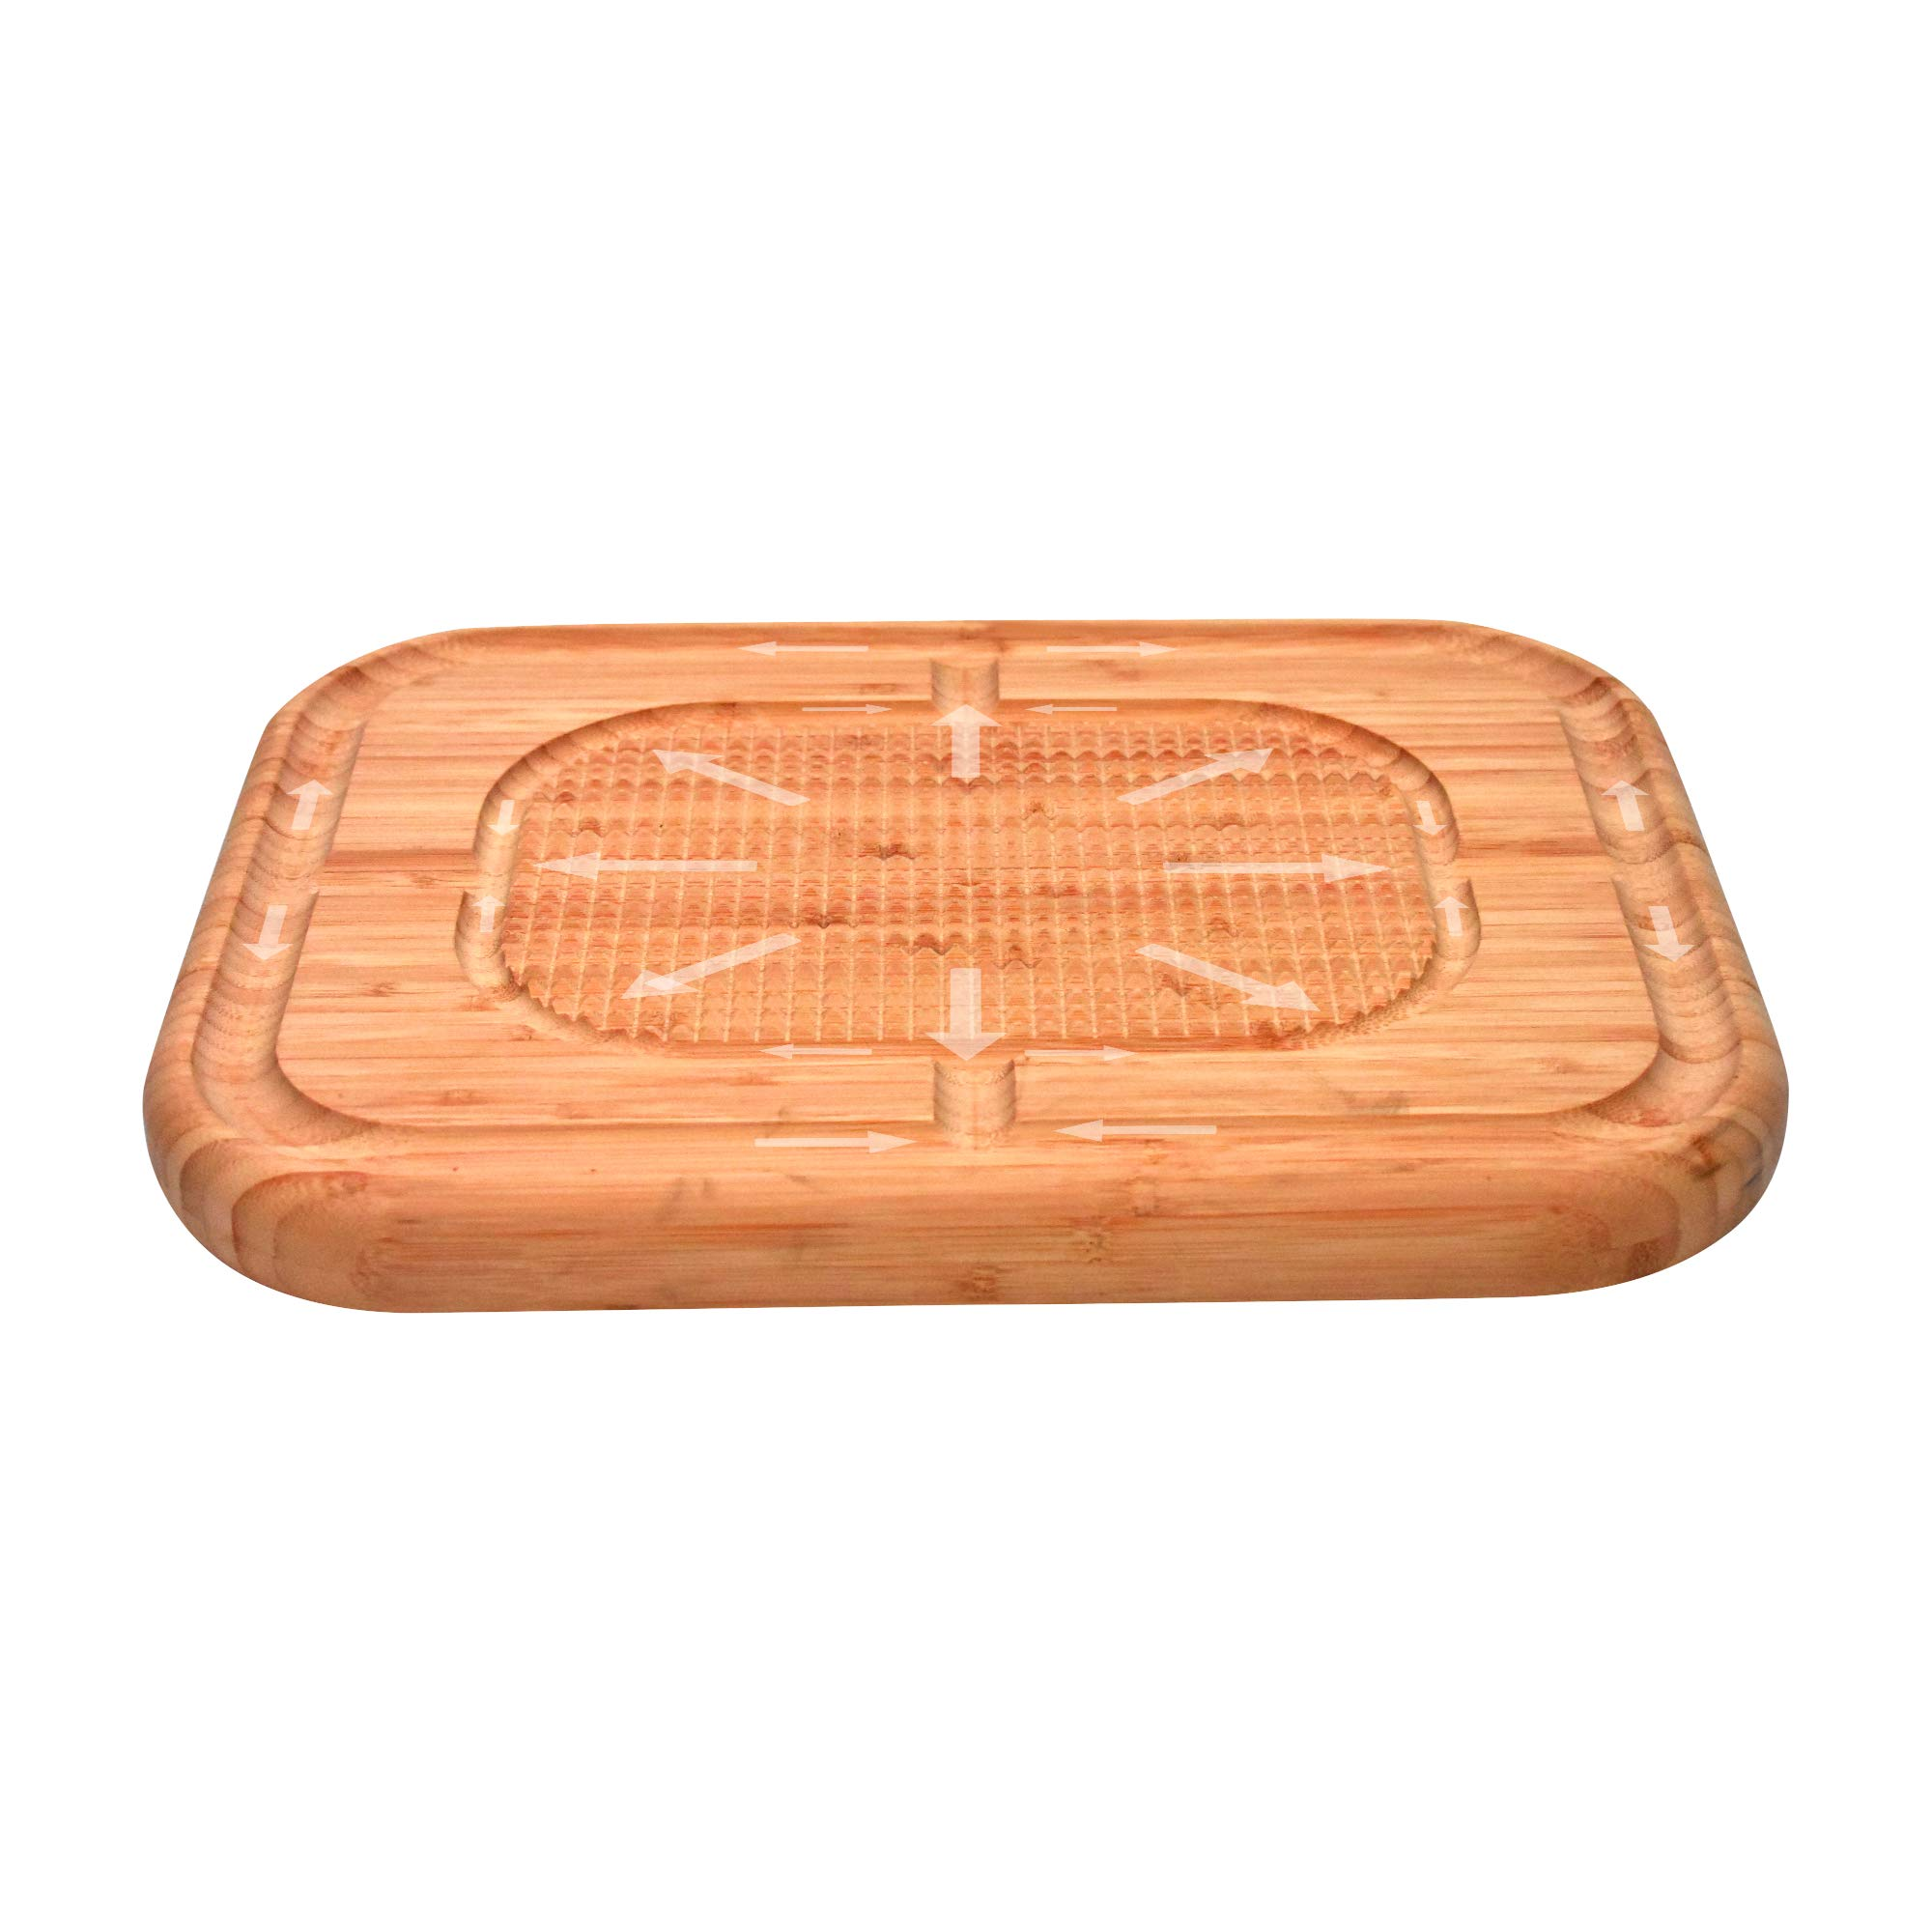 Bambusi Large Carving Cutting Board - 100% Natural Bamboo Meat Serving Tray with Deep Juice Grooves | Stabilizes Beef & Poultry While Chopping | Great Father's Day Gift Idea by Bambüsi (Image #8)